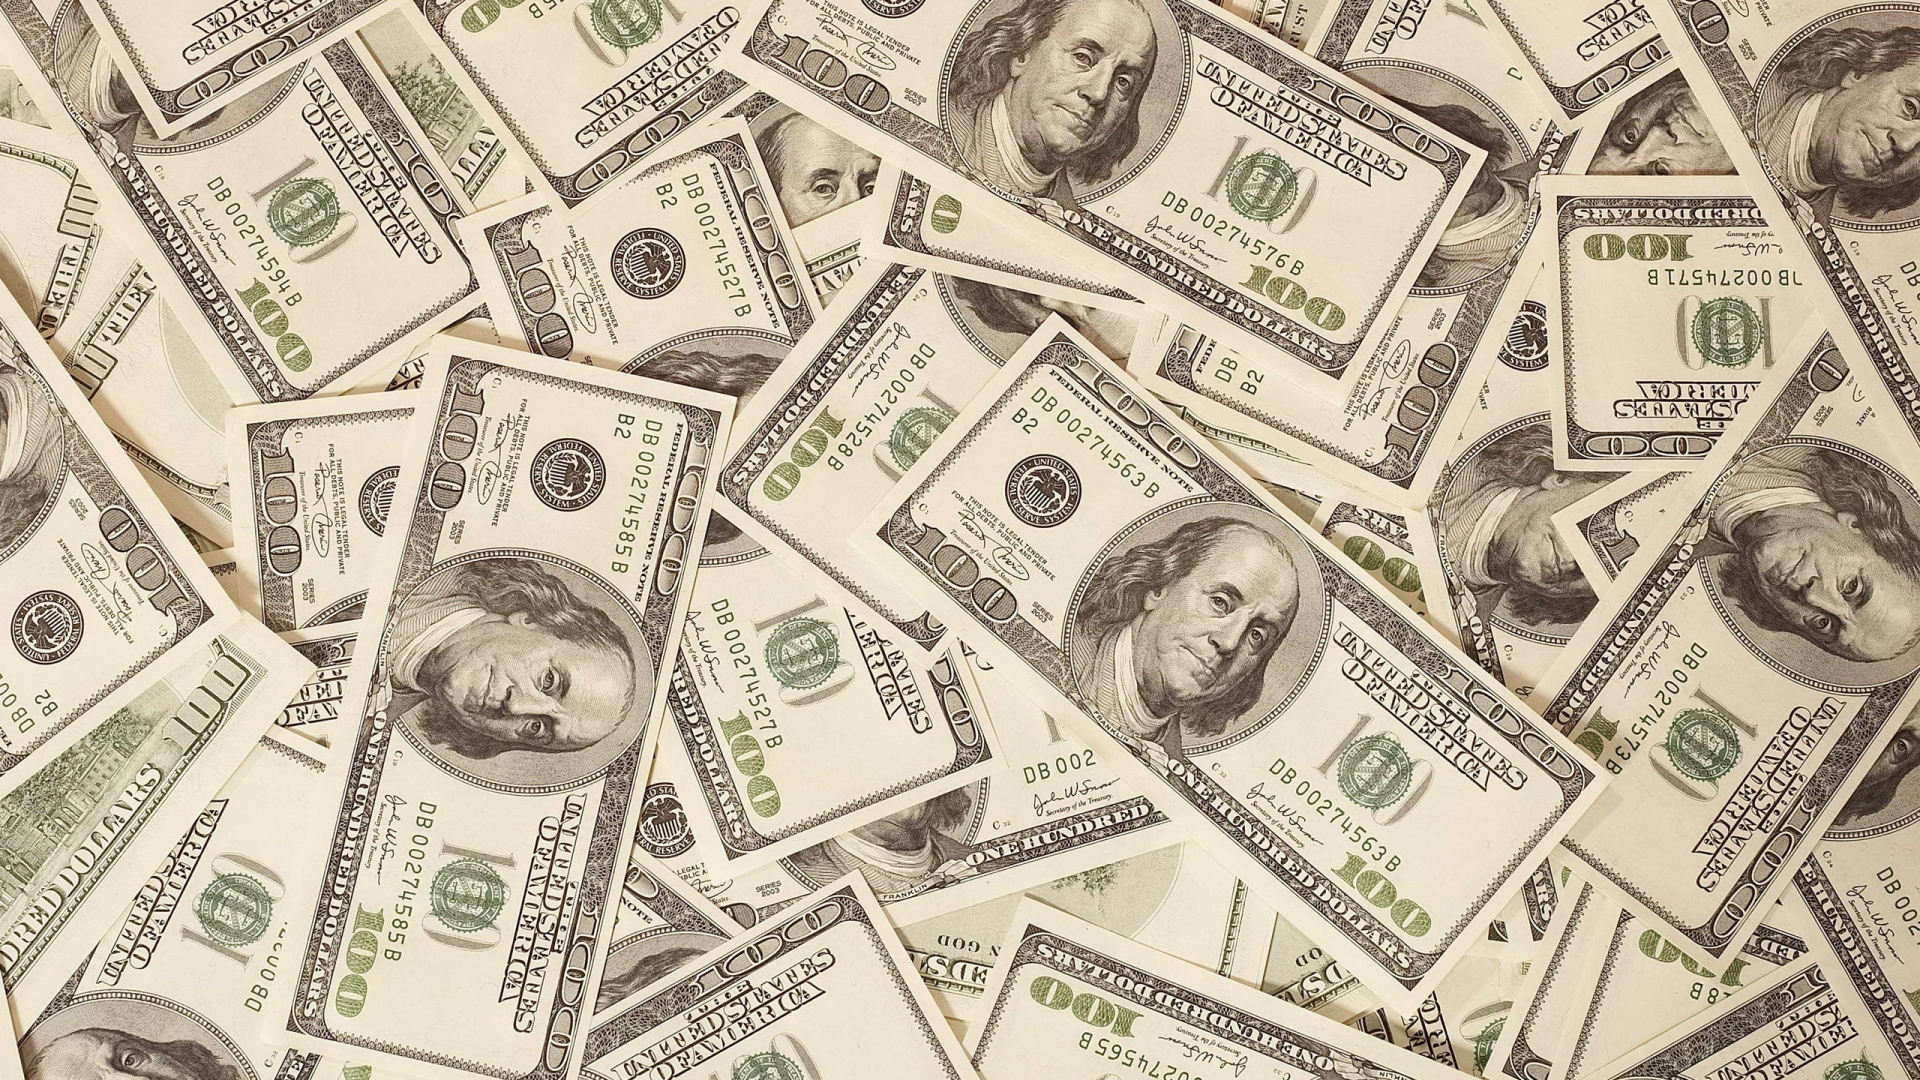 Download money hd wallpapers 1080p gallery - Money hd wallpapers 1080p ...